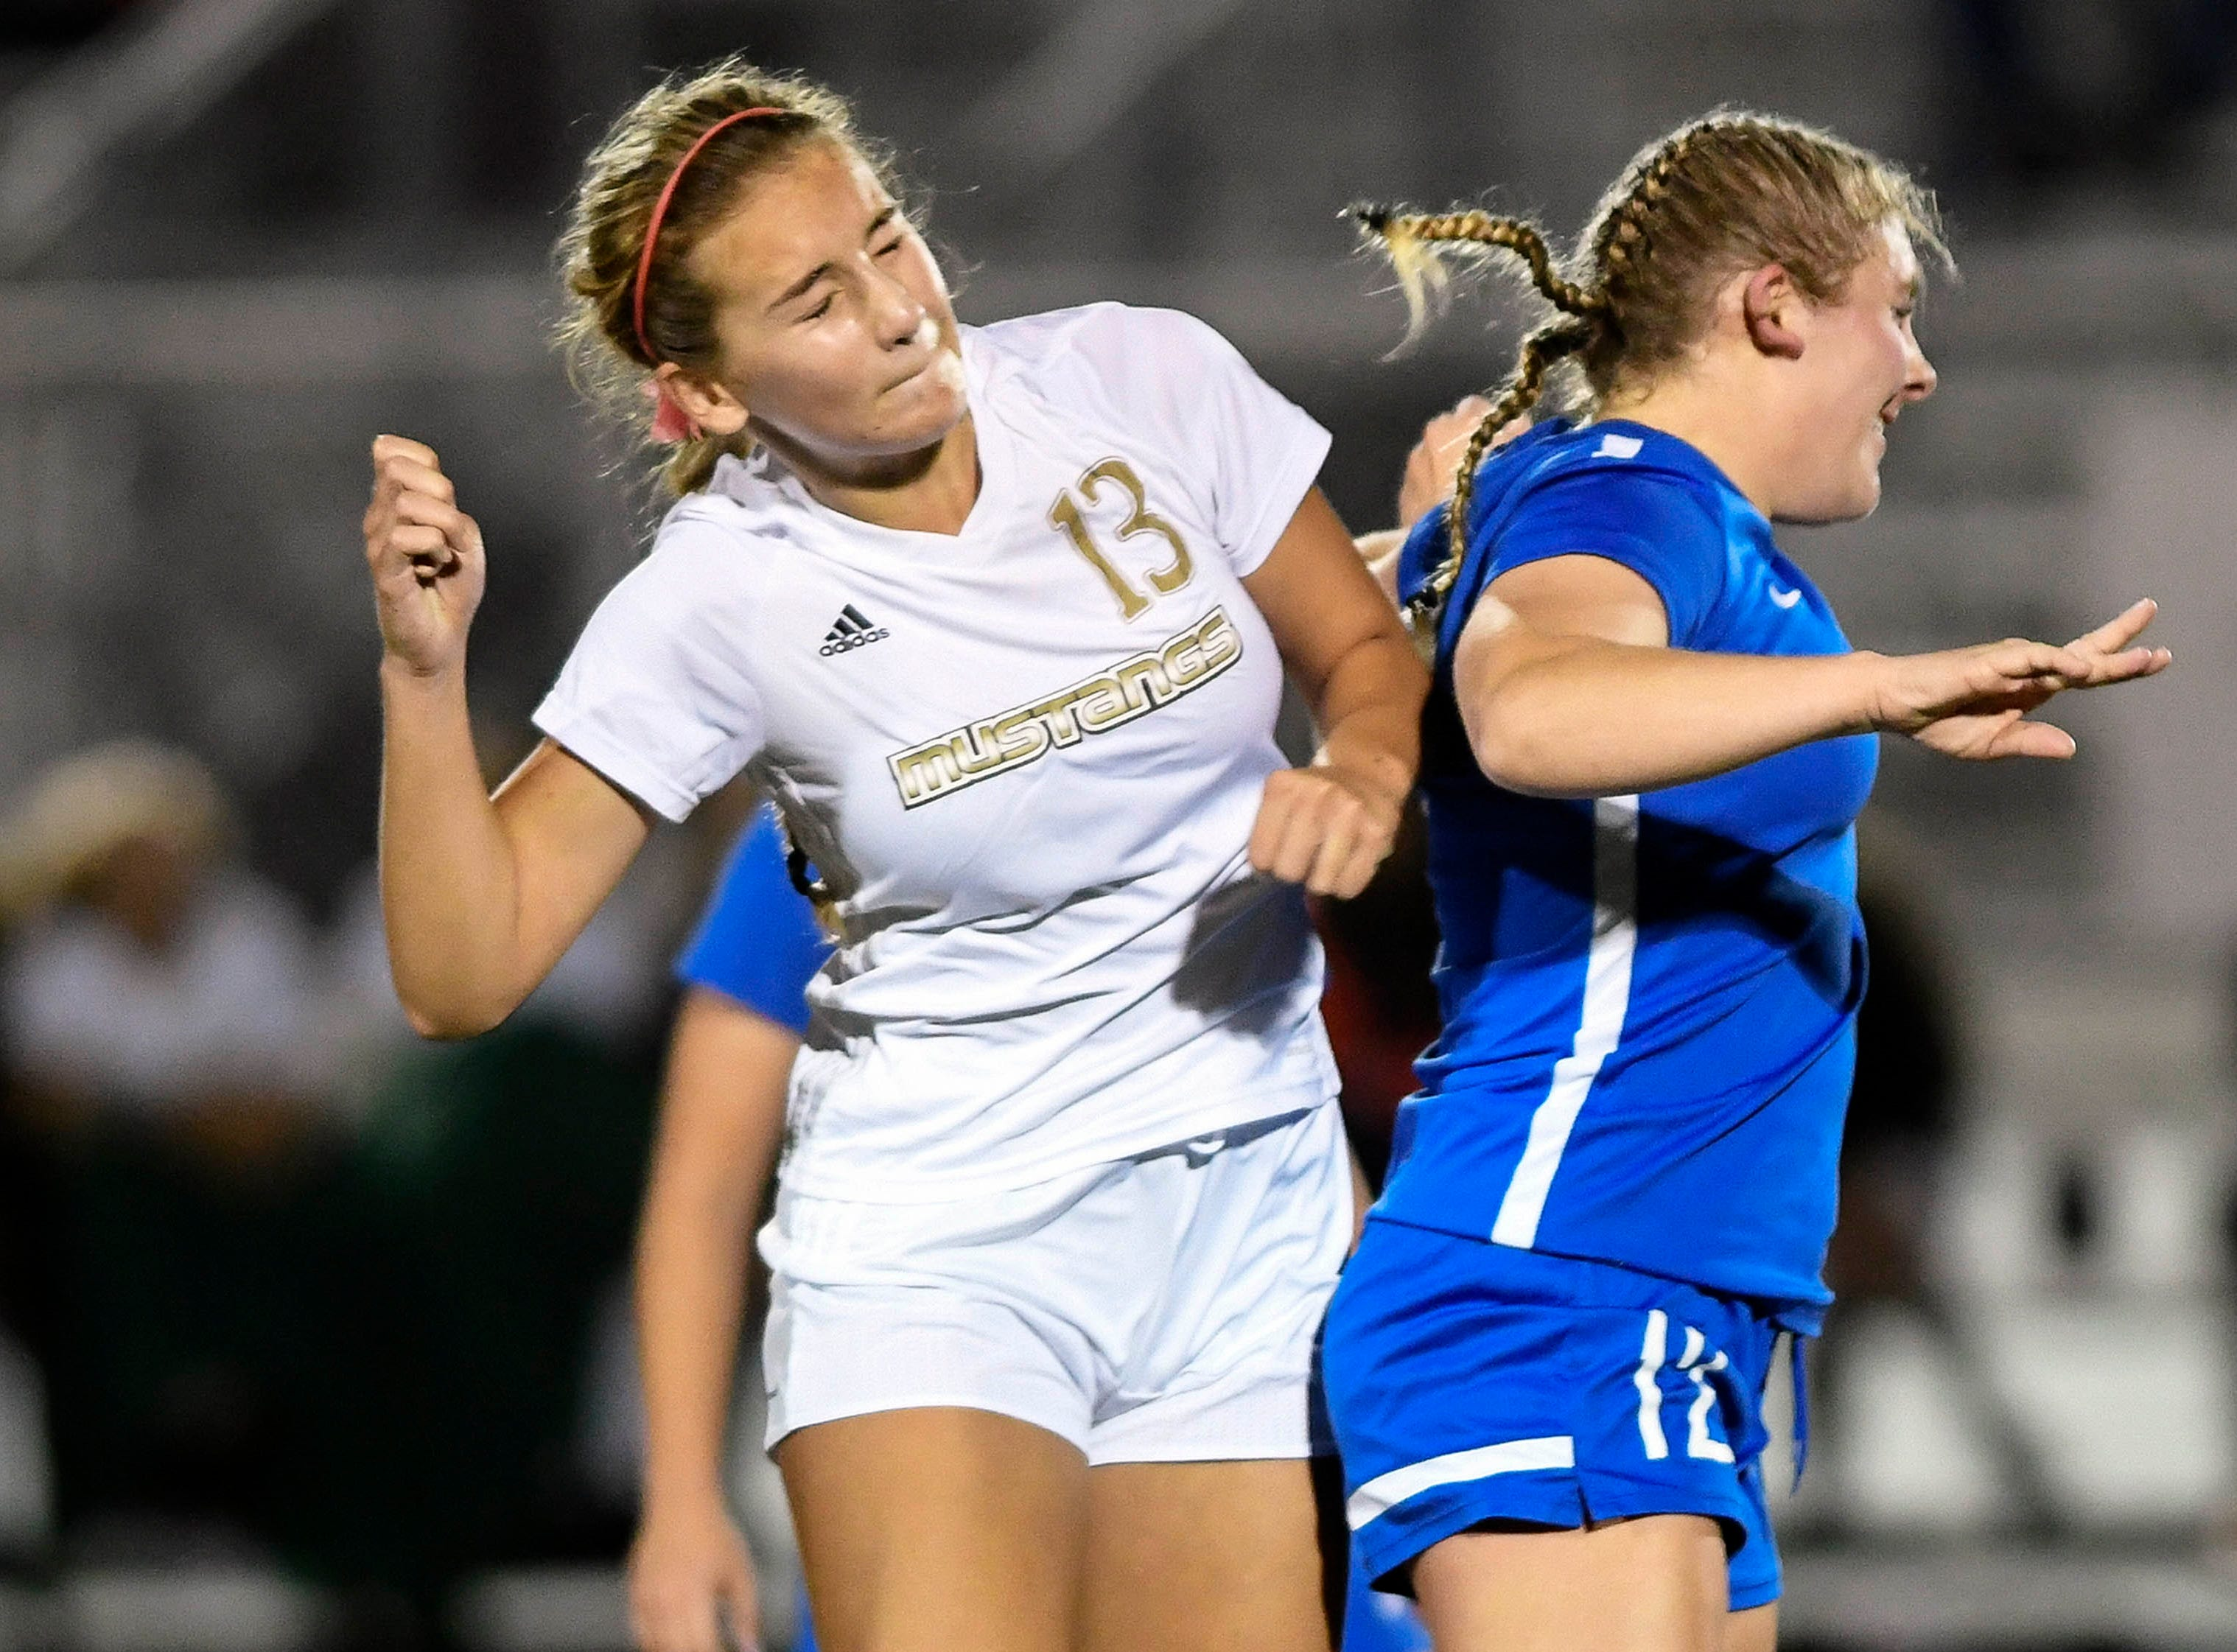 Karys Verpaele of Merritt Island and Macey Neal of Titusville go for a header during Tuesday's District 12, Class 3A soccer semifinal.